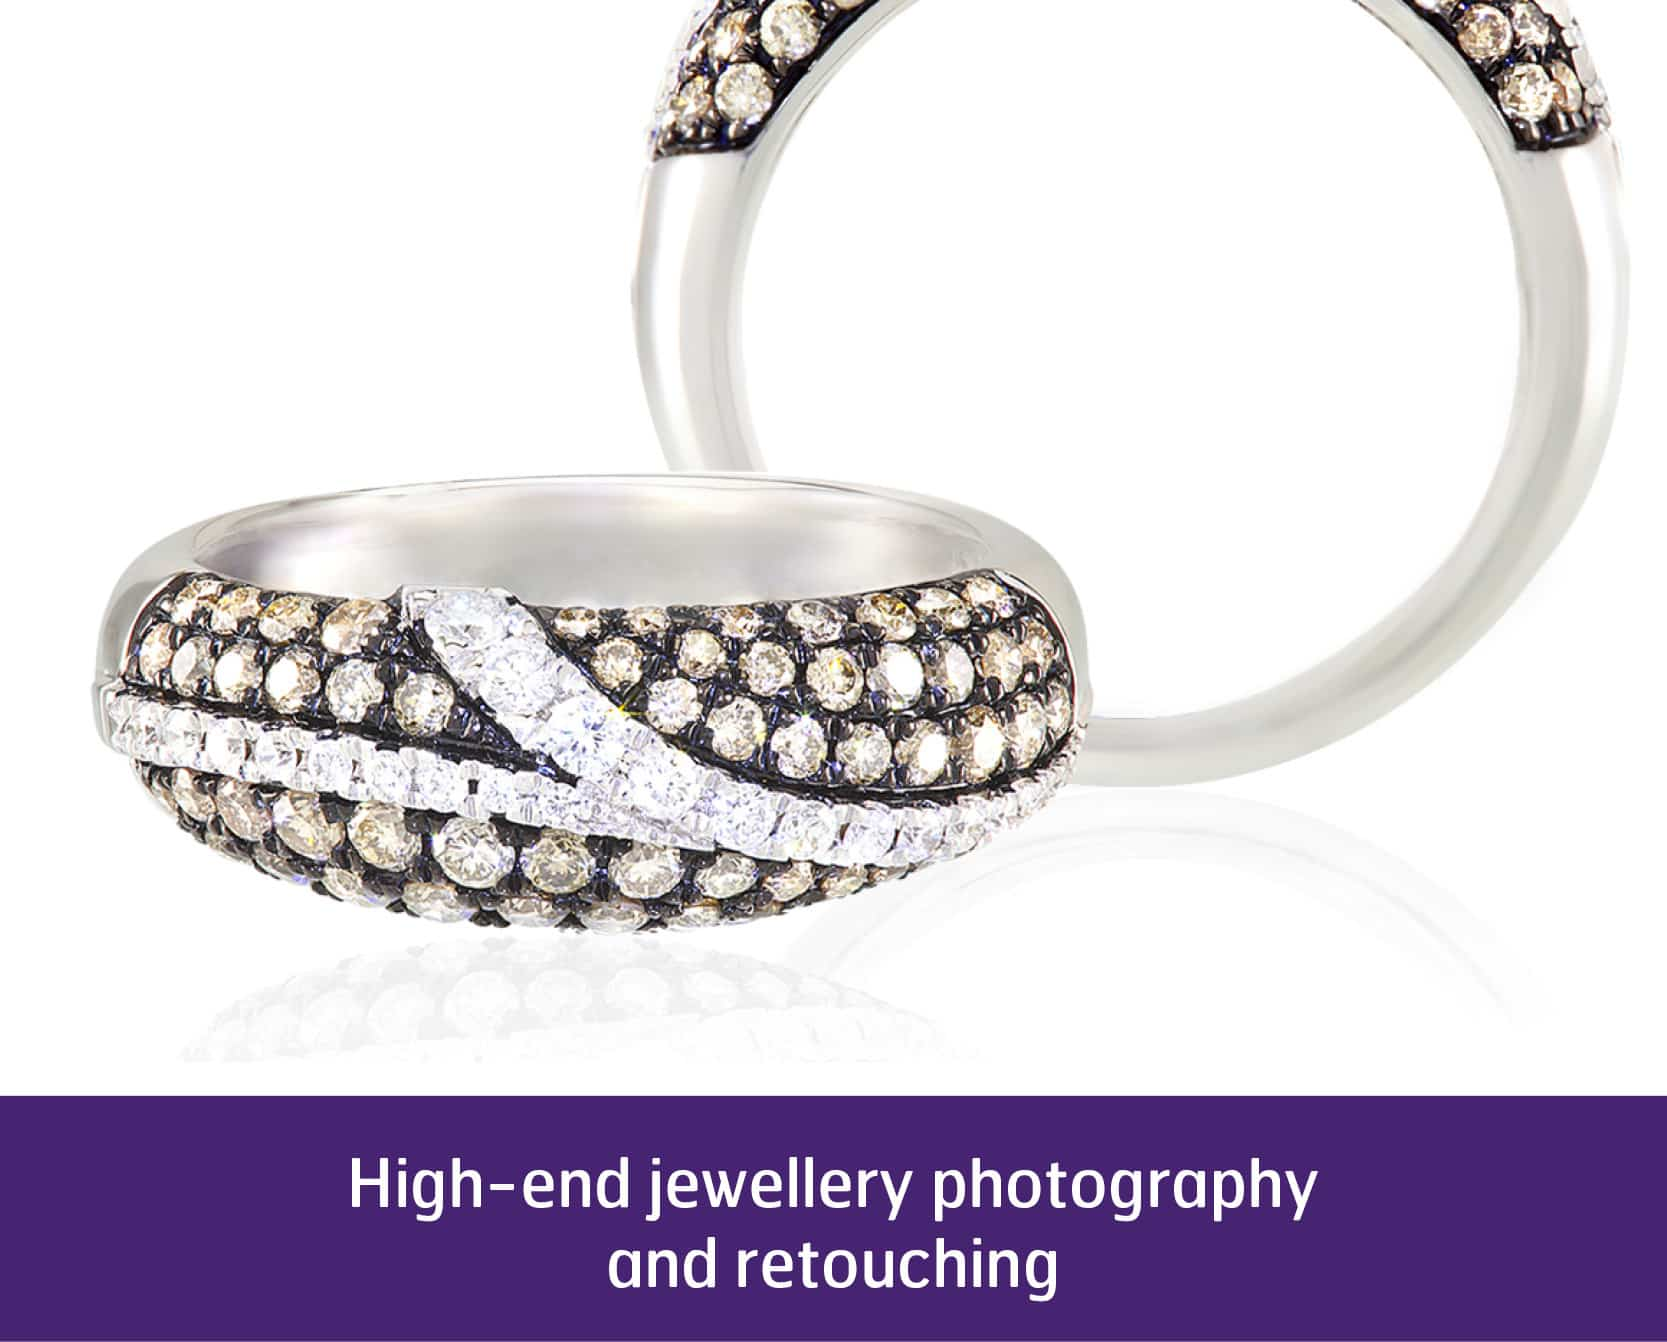 Professional image of diamond ring